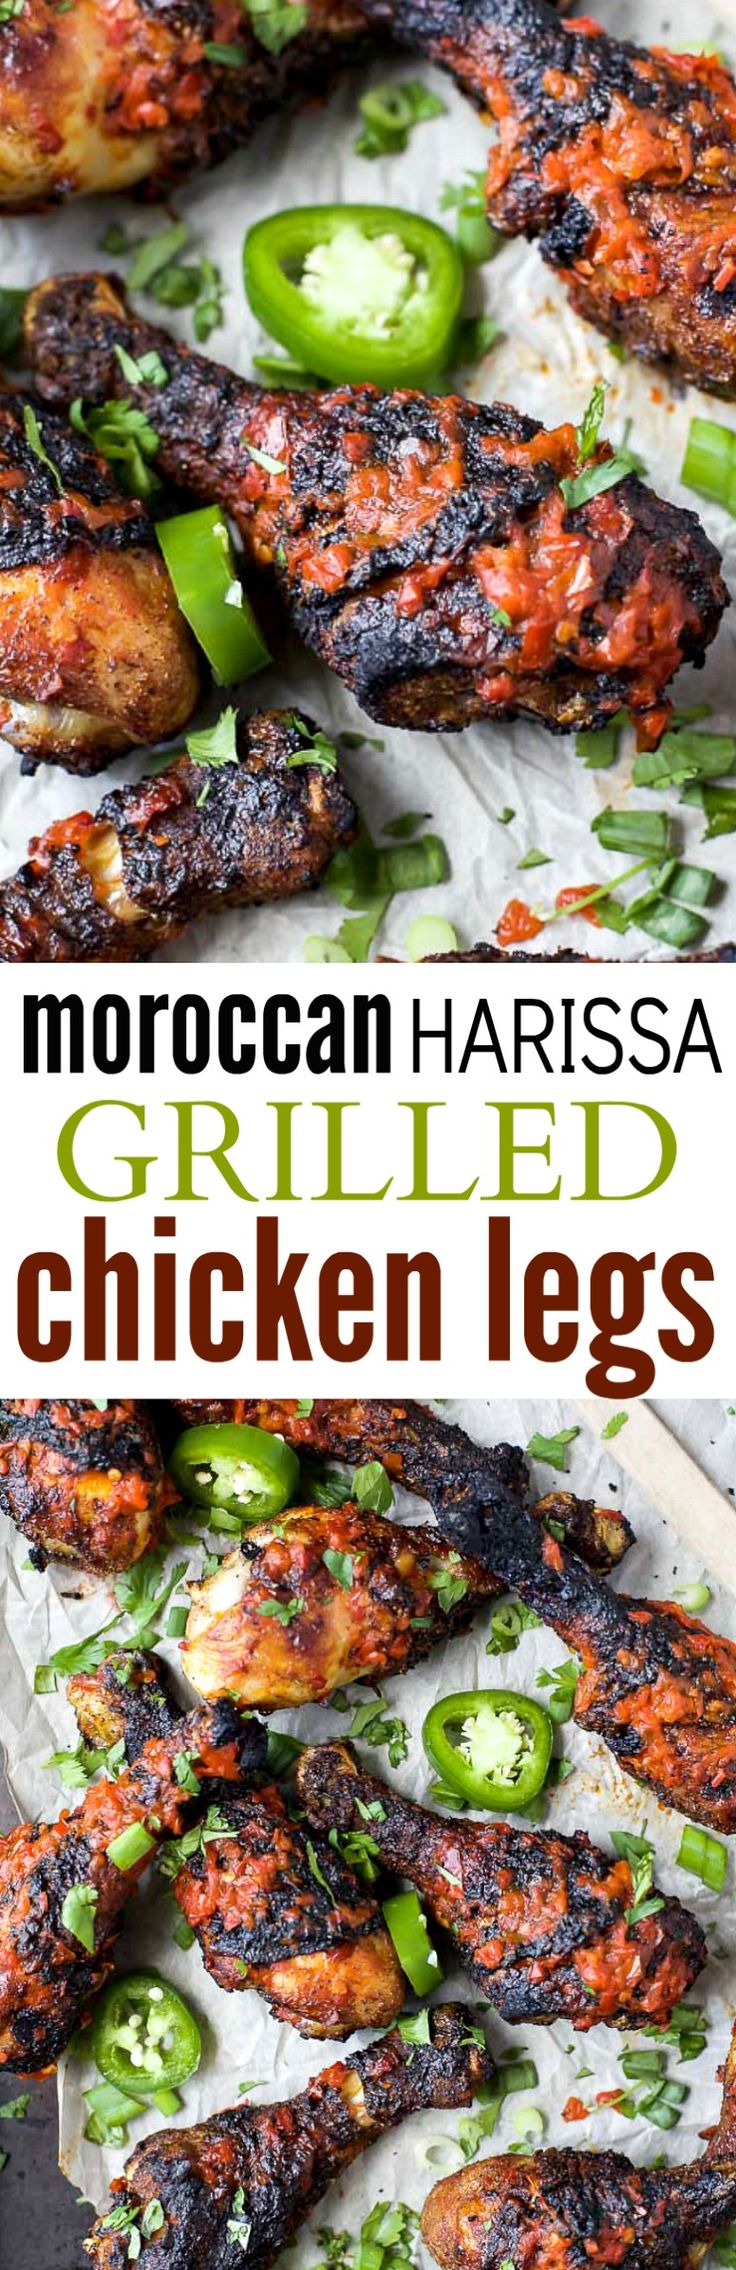 Moroccan Harissa Grilled Chicken Legs the perfect grilling recipe to wow the crowd this summer! | gluten free recipes (Gluten Free Recipes Mexican)